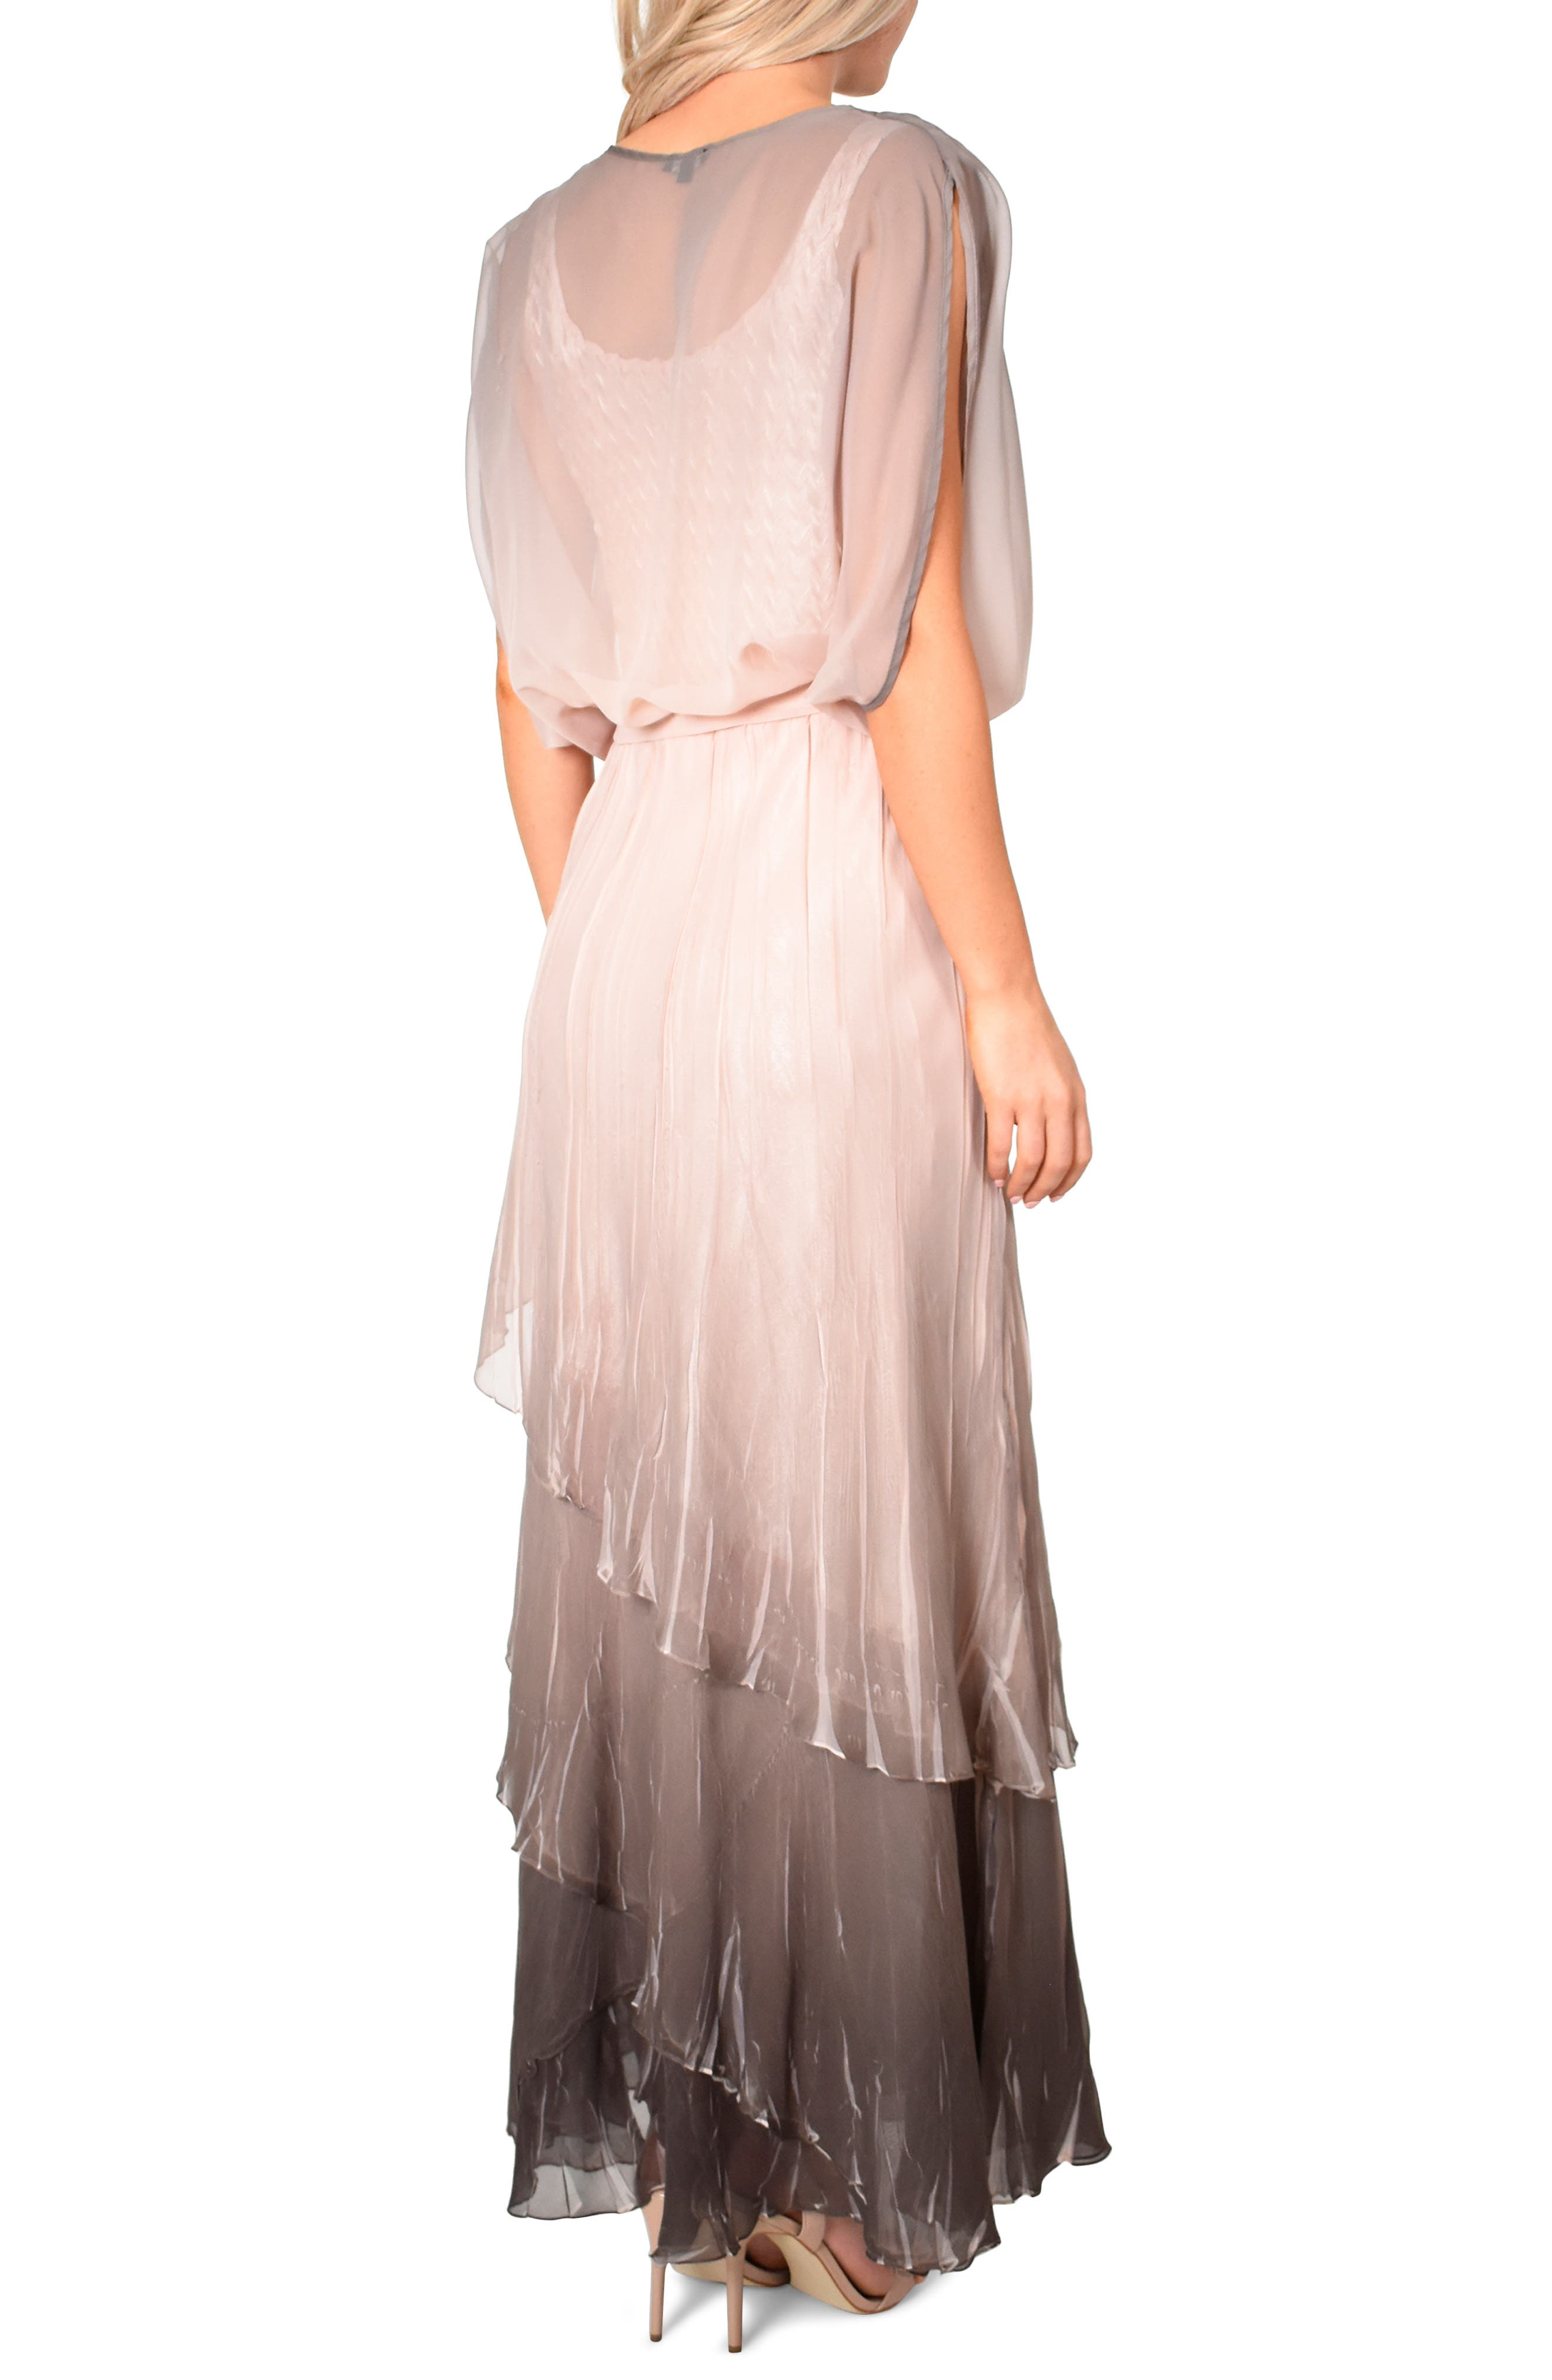 KOMAROV, Drape Chiffon Gown, Alternate thumbnail 2, color, 250